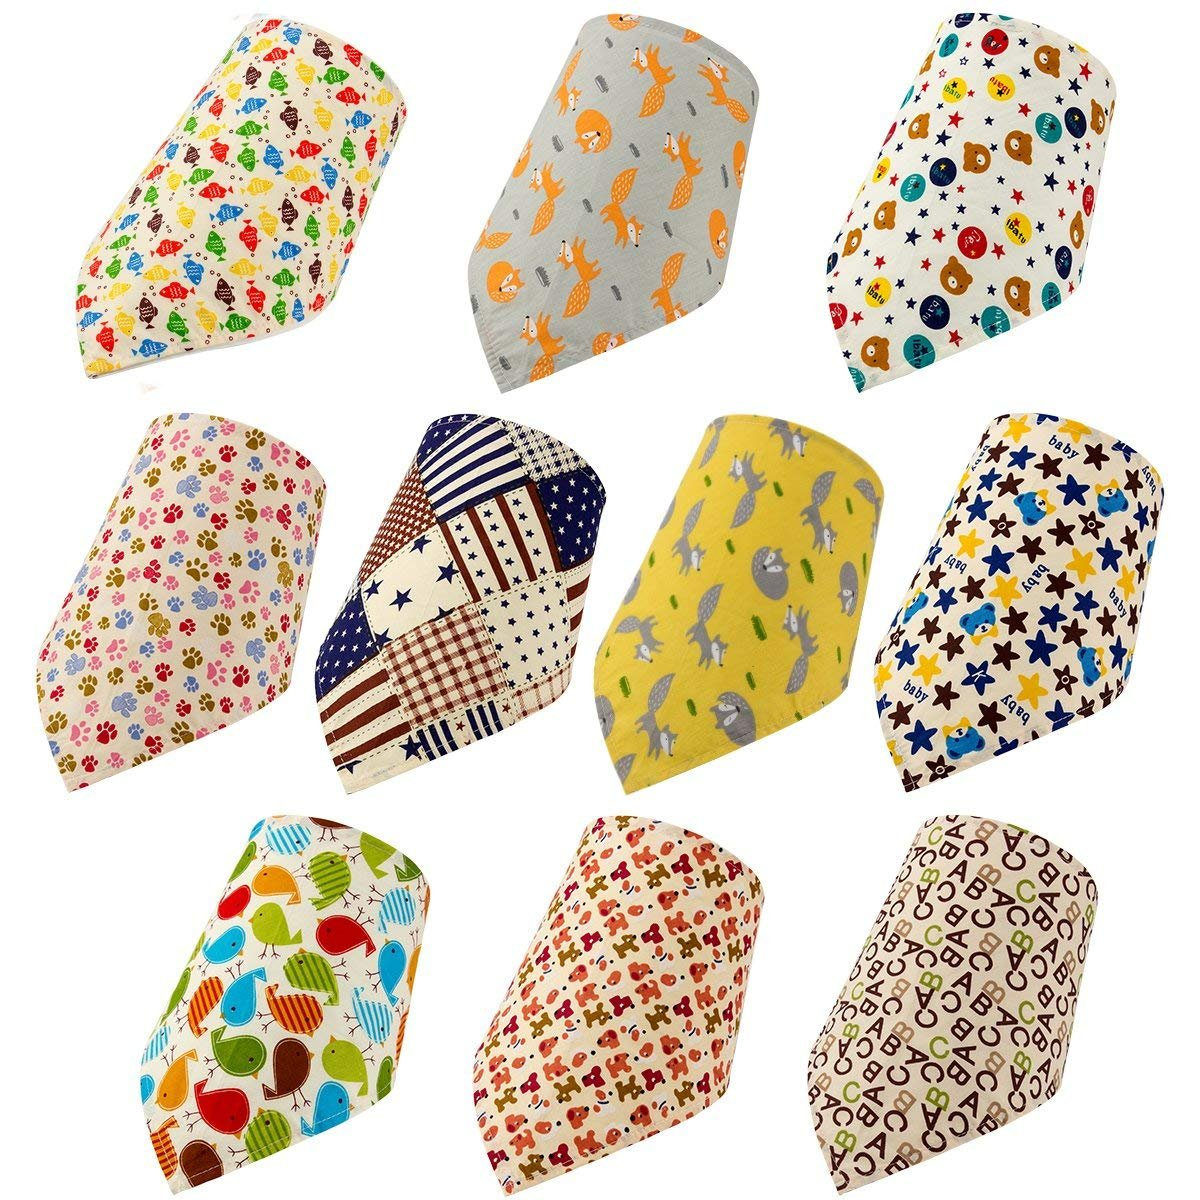 MEWTOGO 10 Pack Dog Bandanas - Washable and Reversible Triangle Cotton Dog Bibs Scarf Assortment Suitable for Puppy Small and Medium Pet